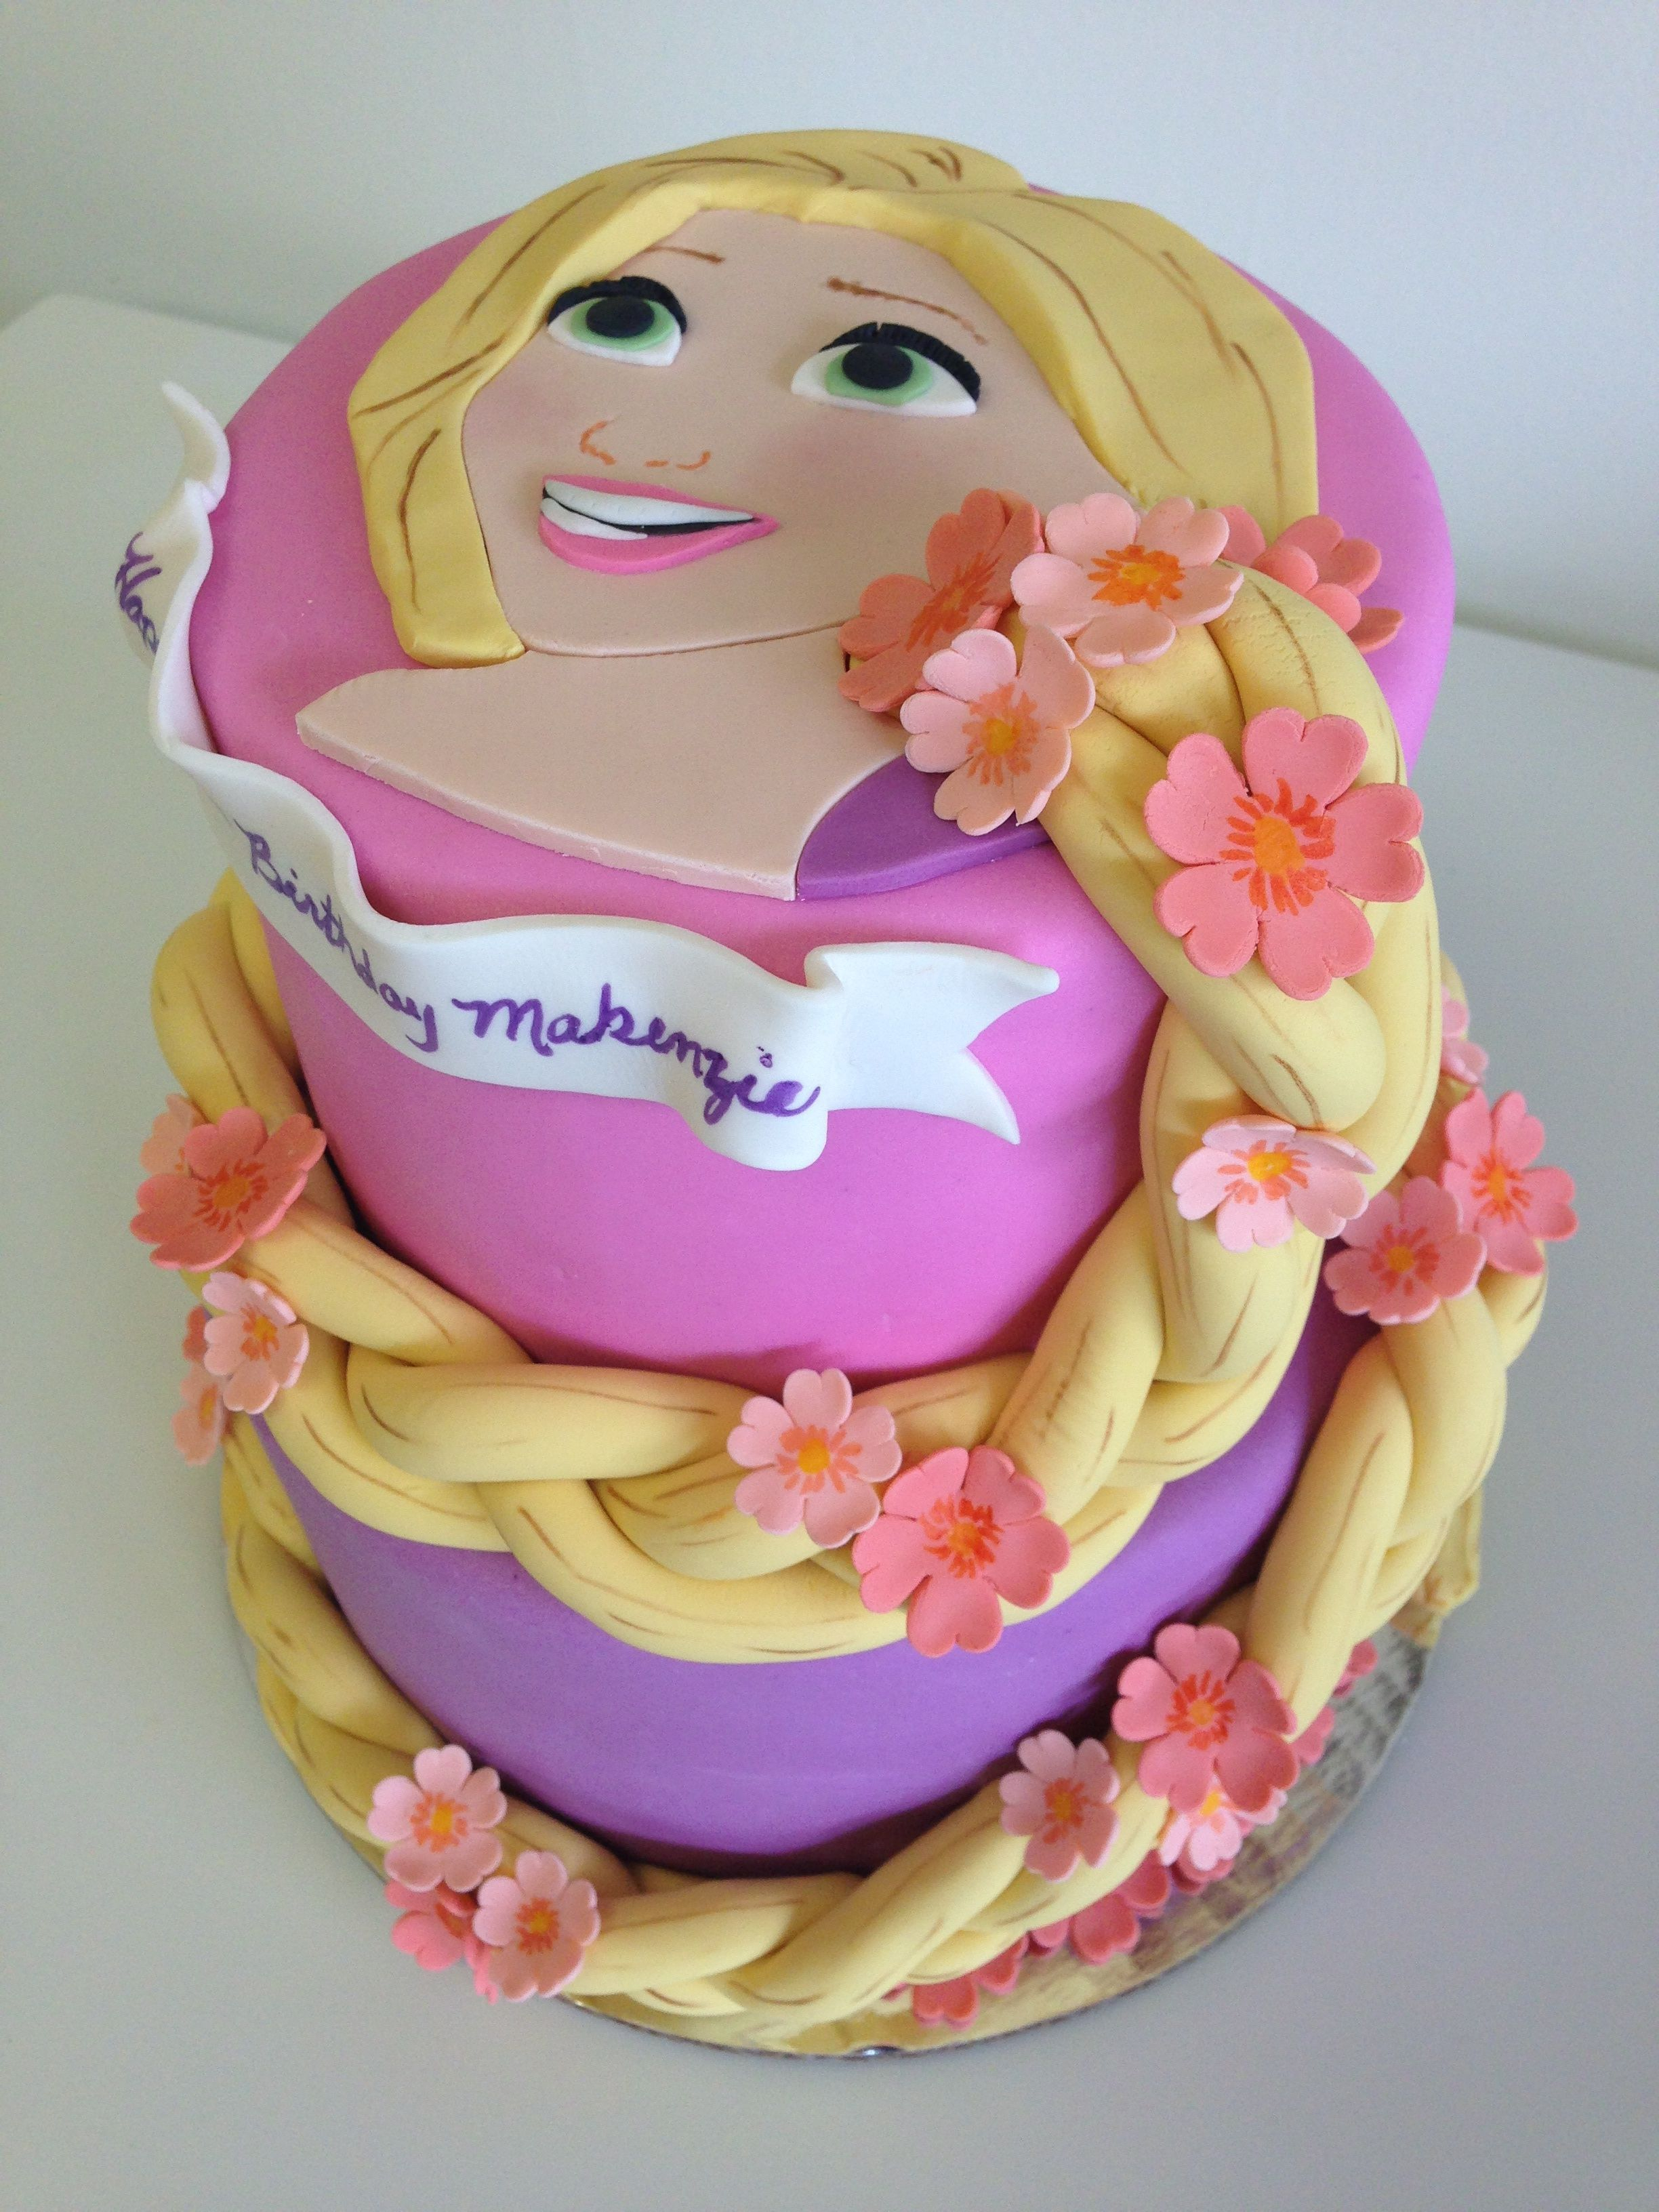 Rapunzel Birthday Cake Rapunzel Cake I Would Have No Idea How To Do This But I Would Love